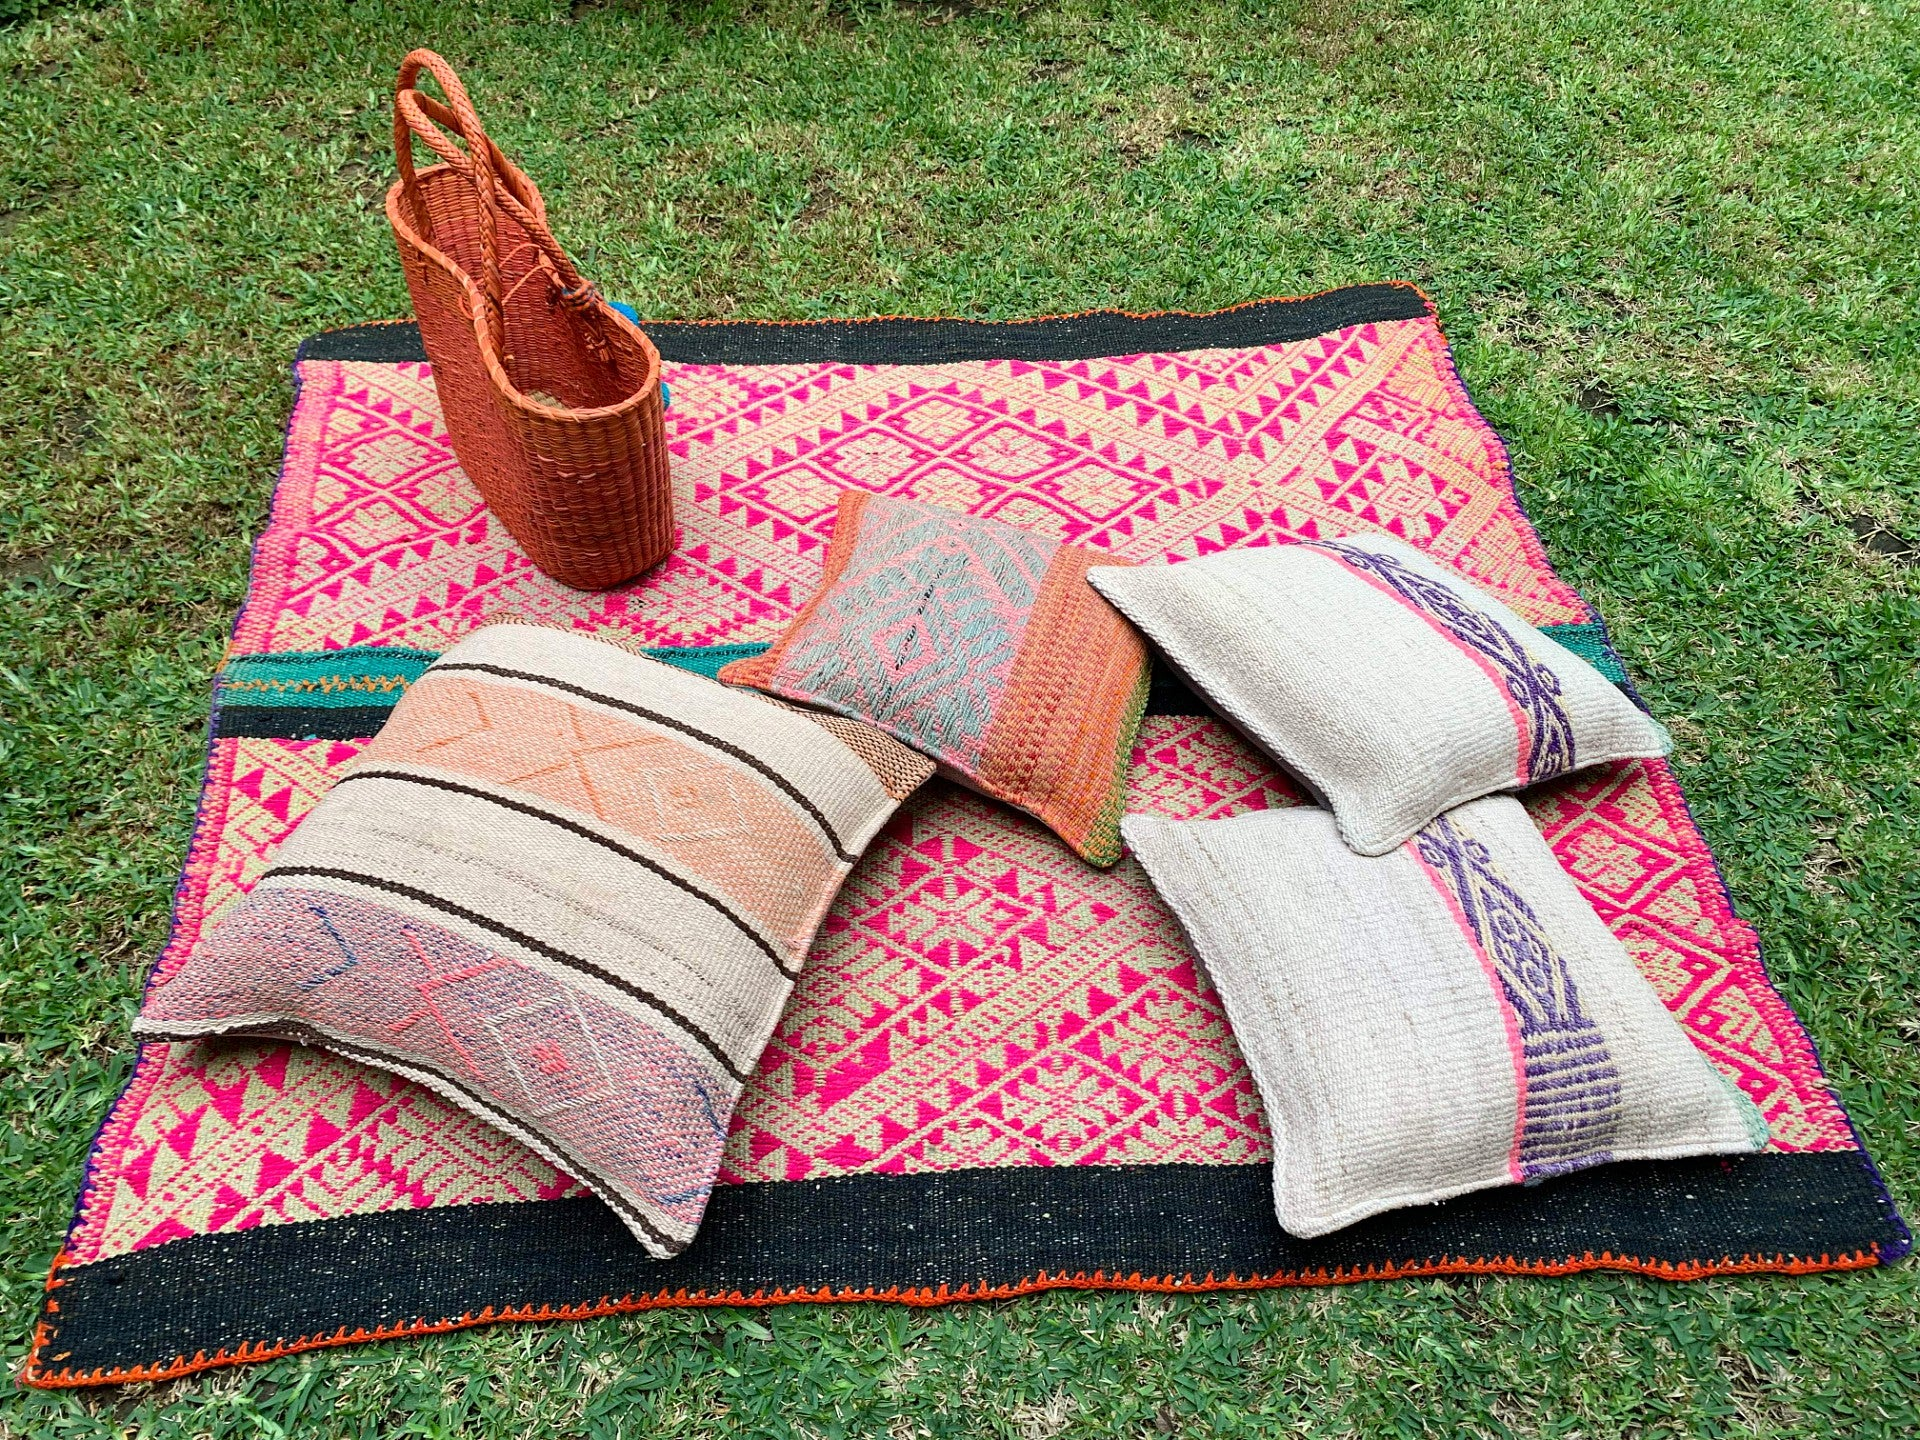 Large Frazada Pillow Covers in Rayas